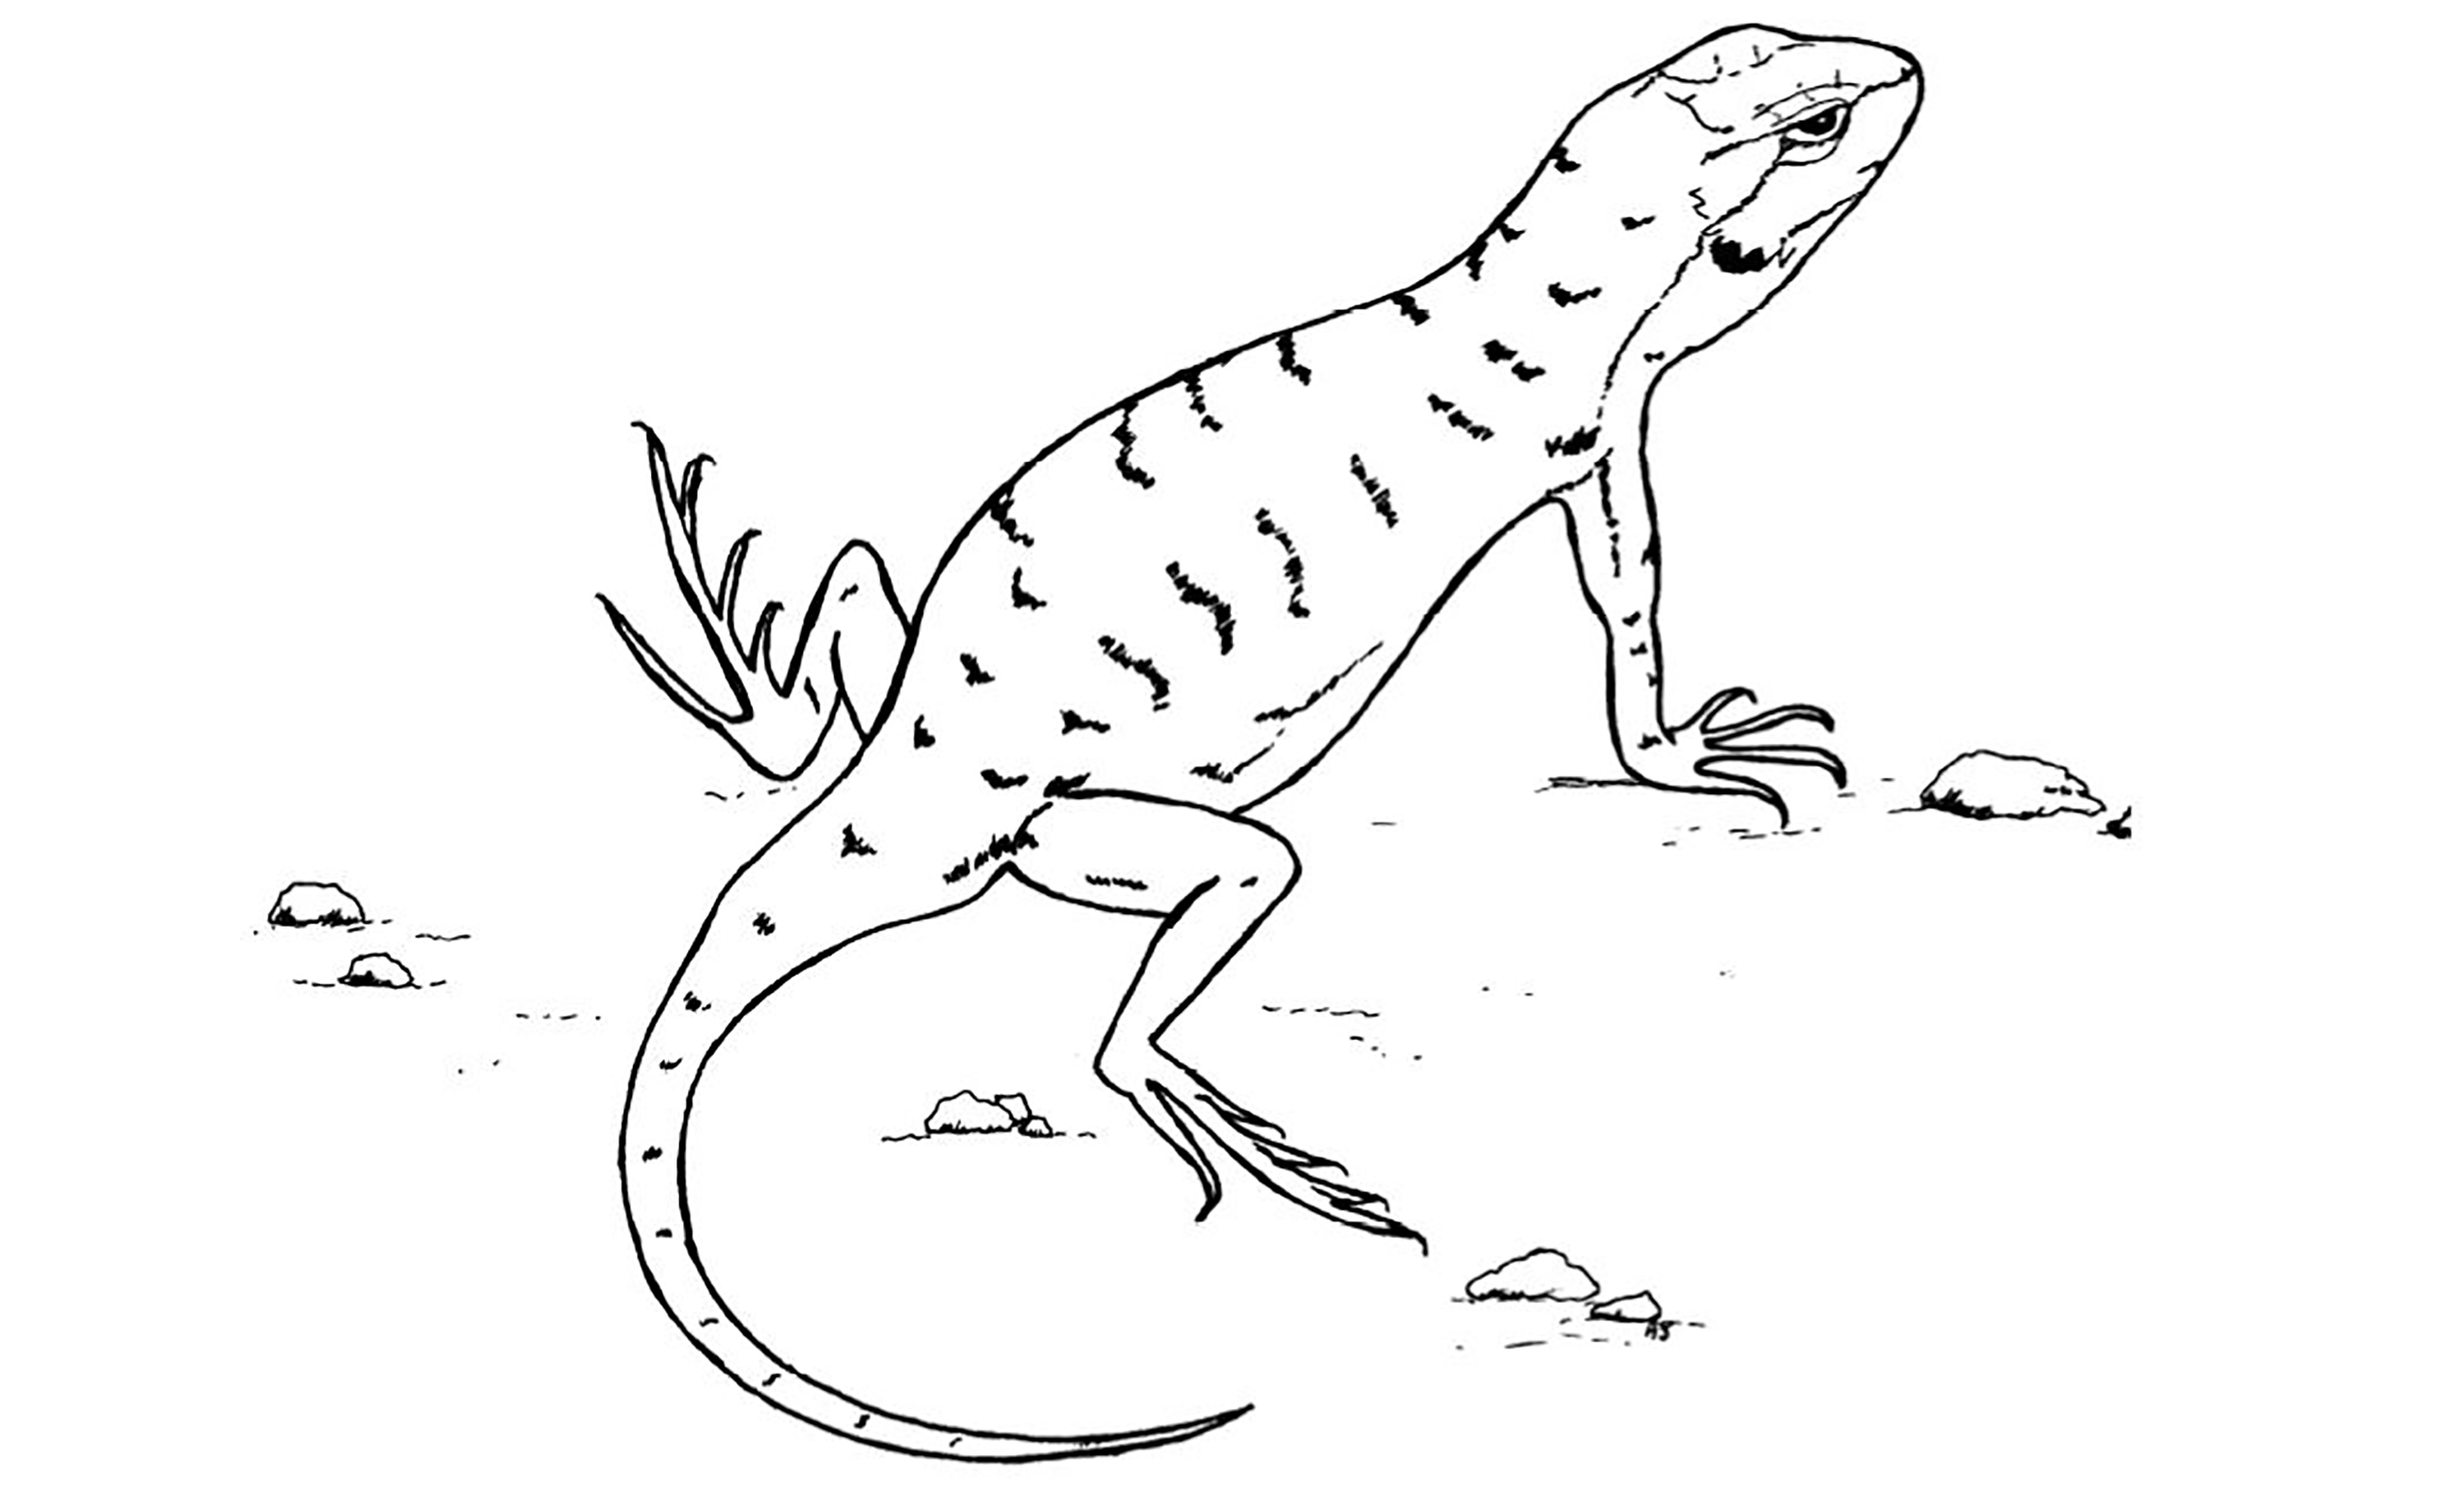 a line drawing of a lizard